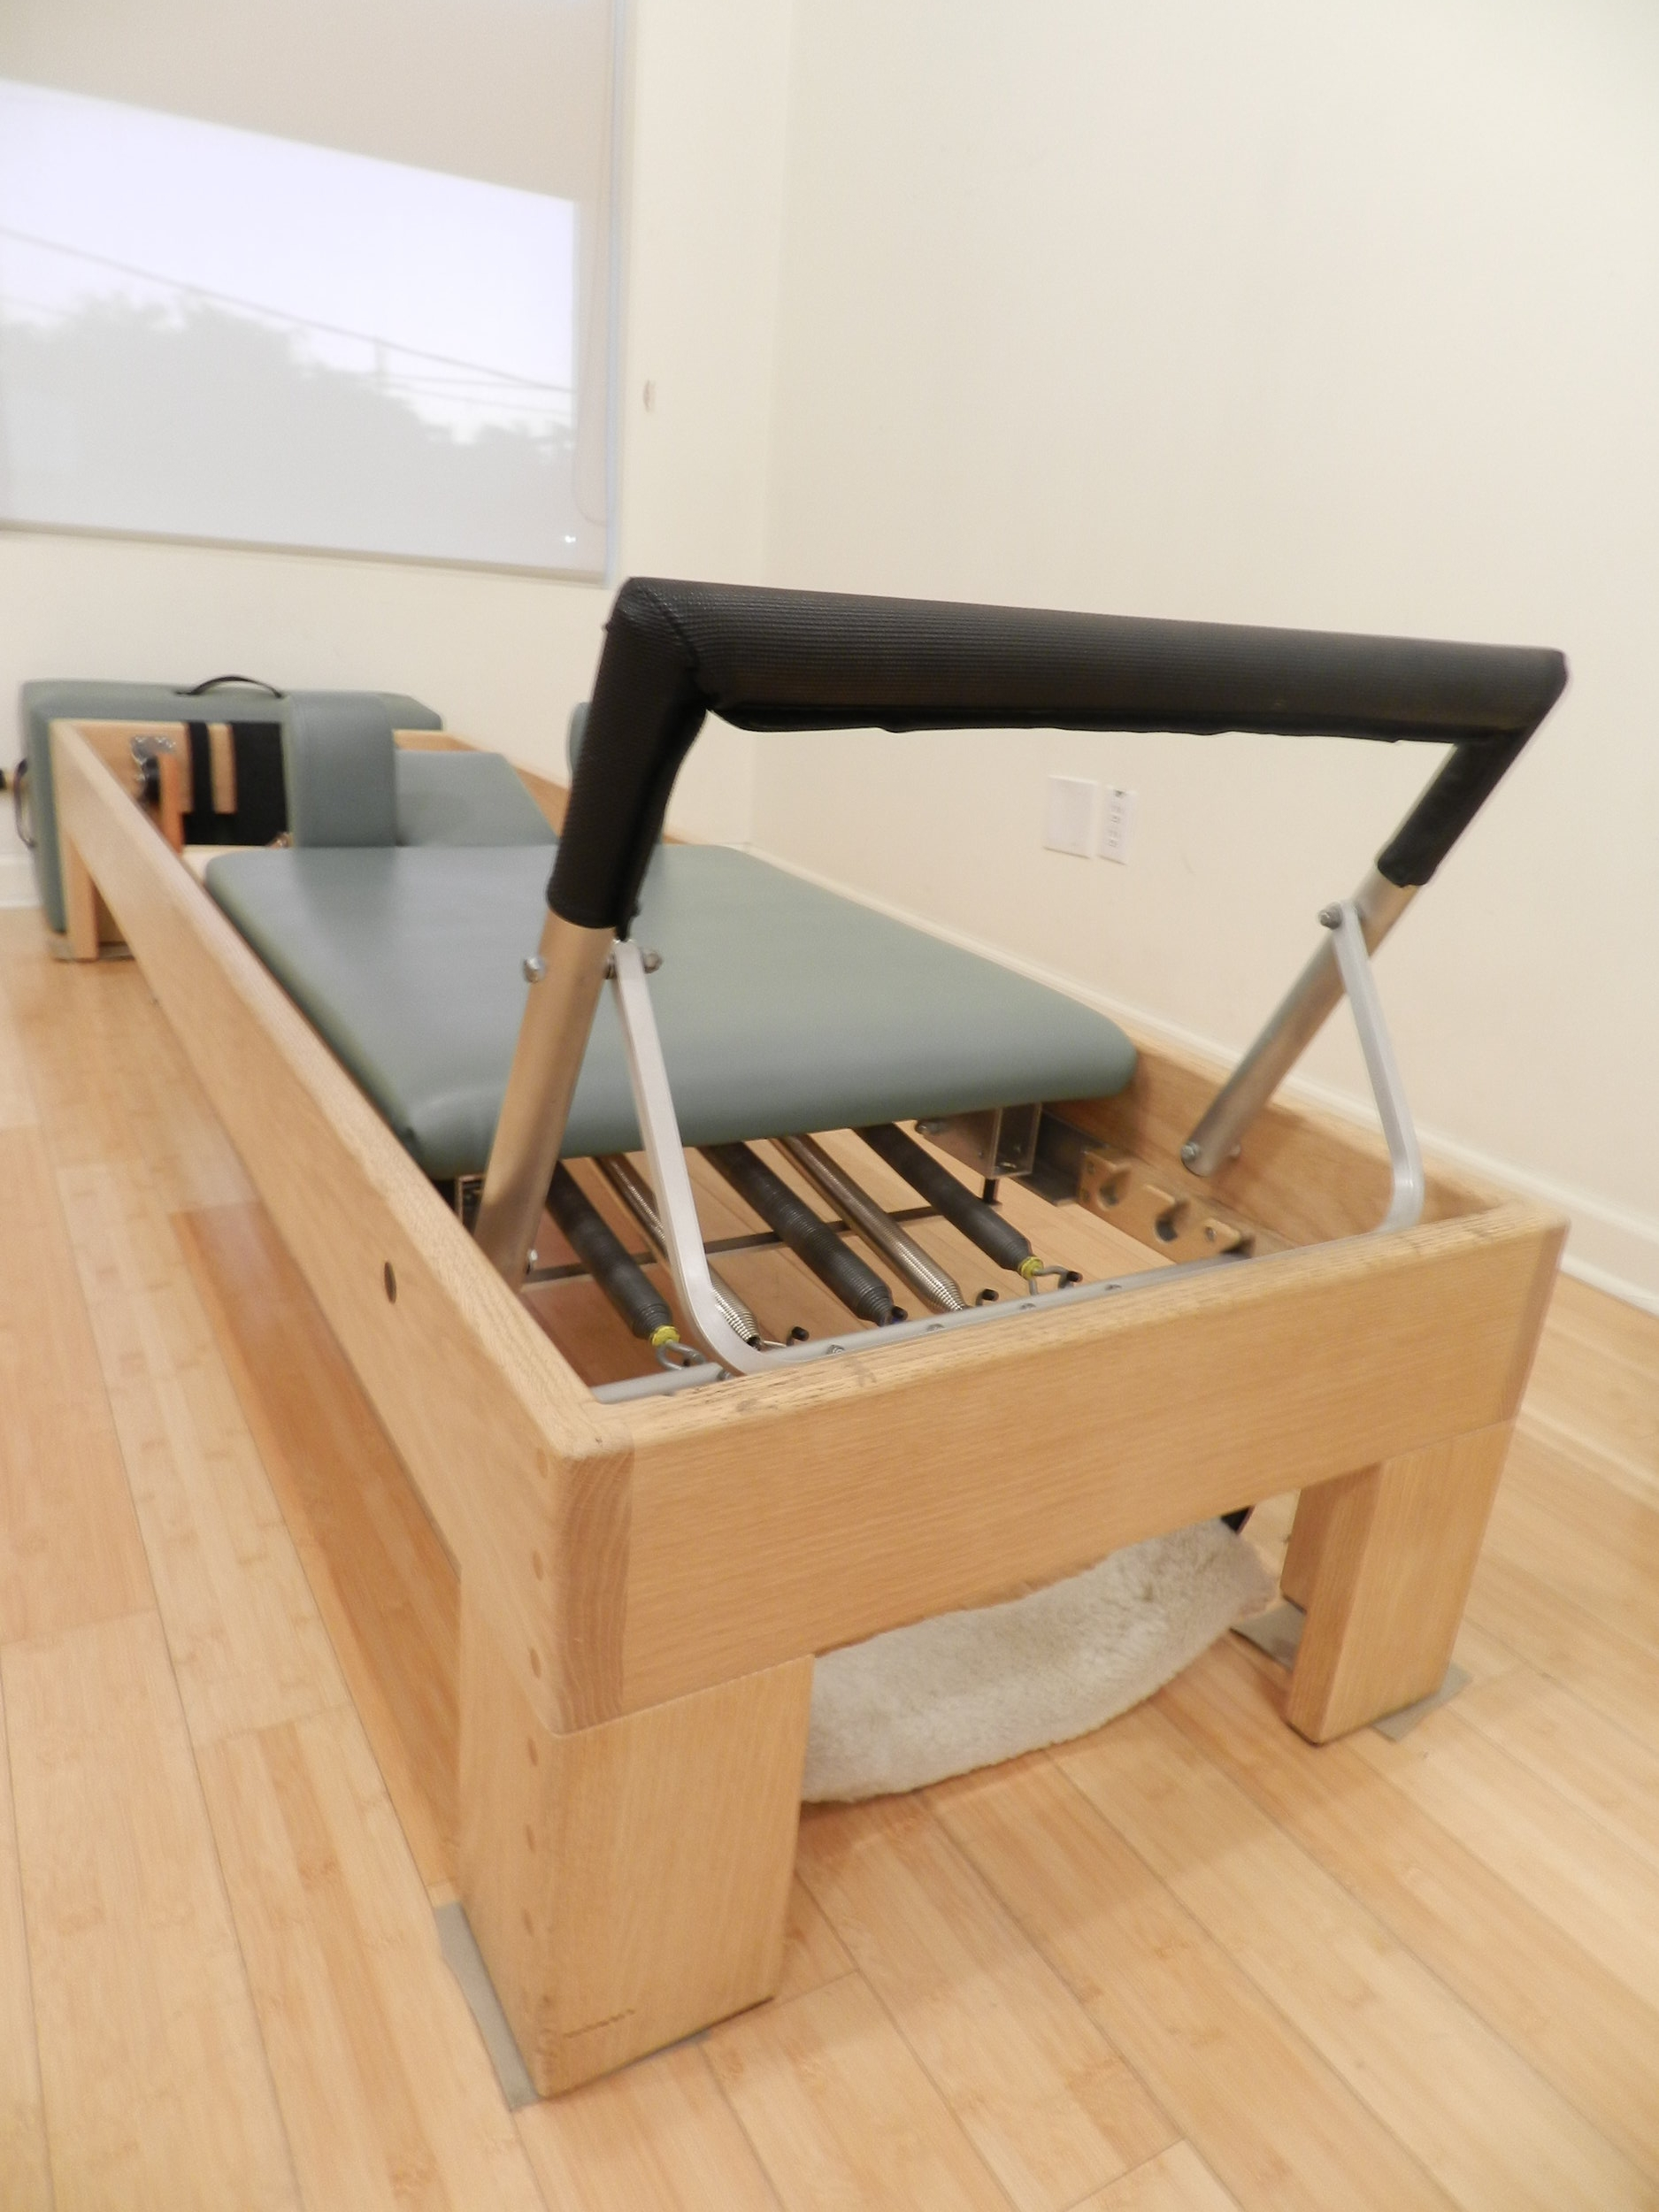 Invest in a few private sessions on the Pilates apparatus (reformer pictured above). You will enjoy one on one attention and become accustomed to the springs and moving parts and pieces you'll need to manage in a group setting.